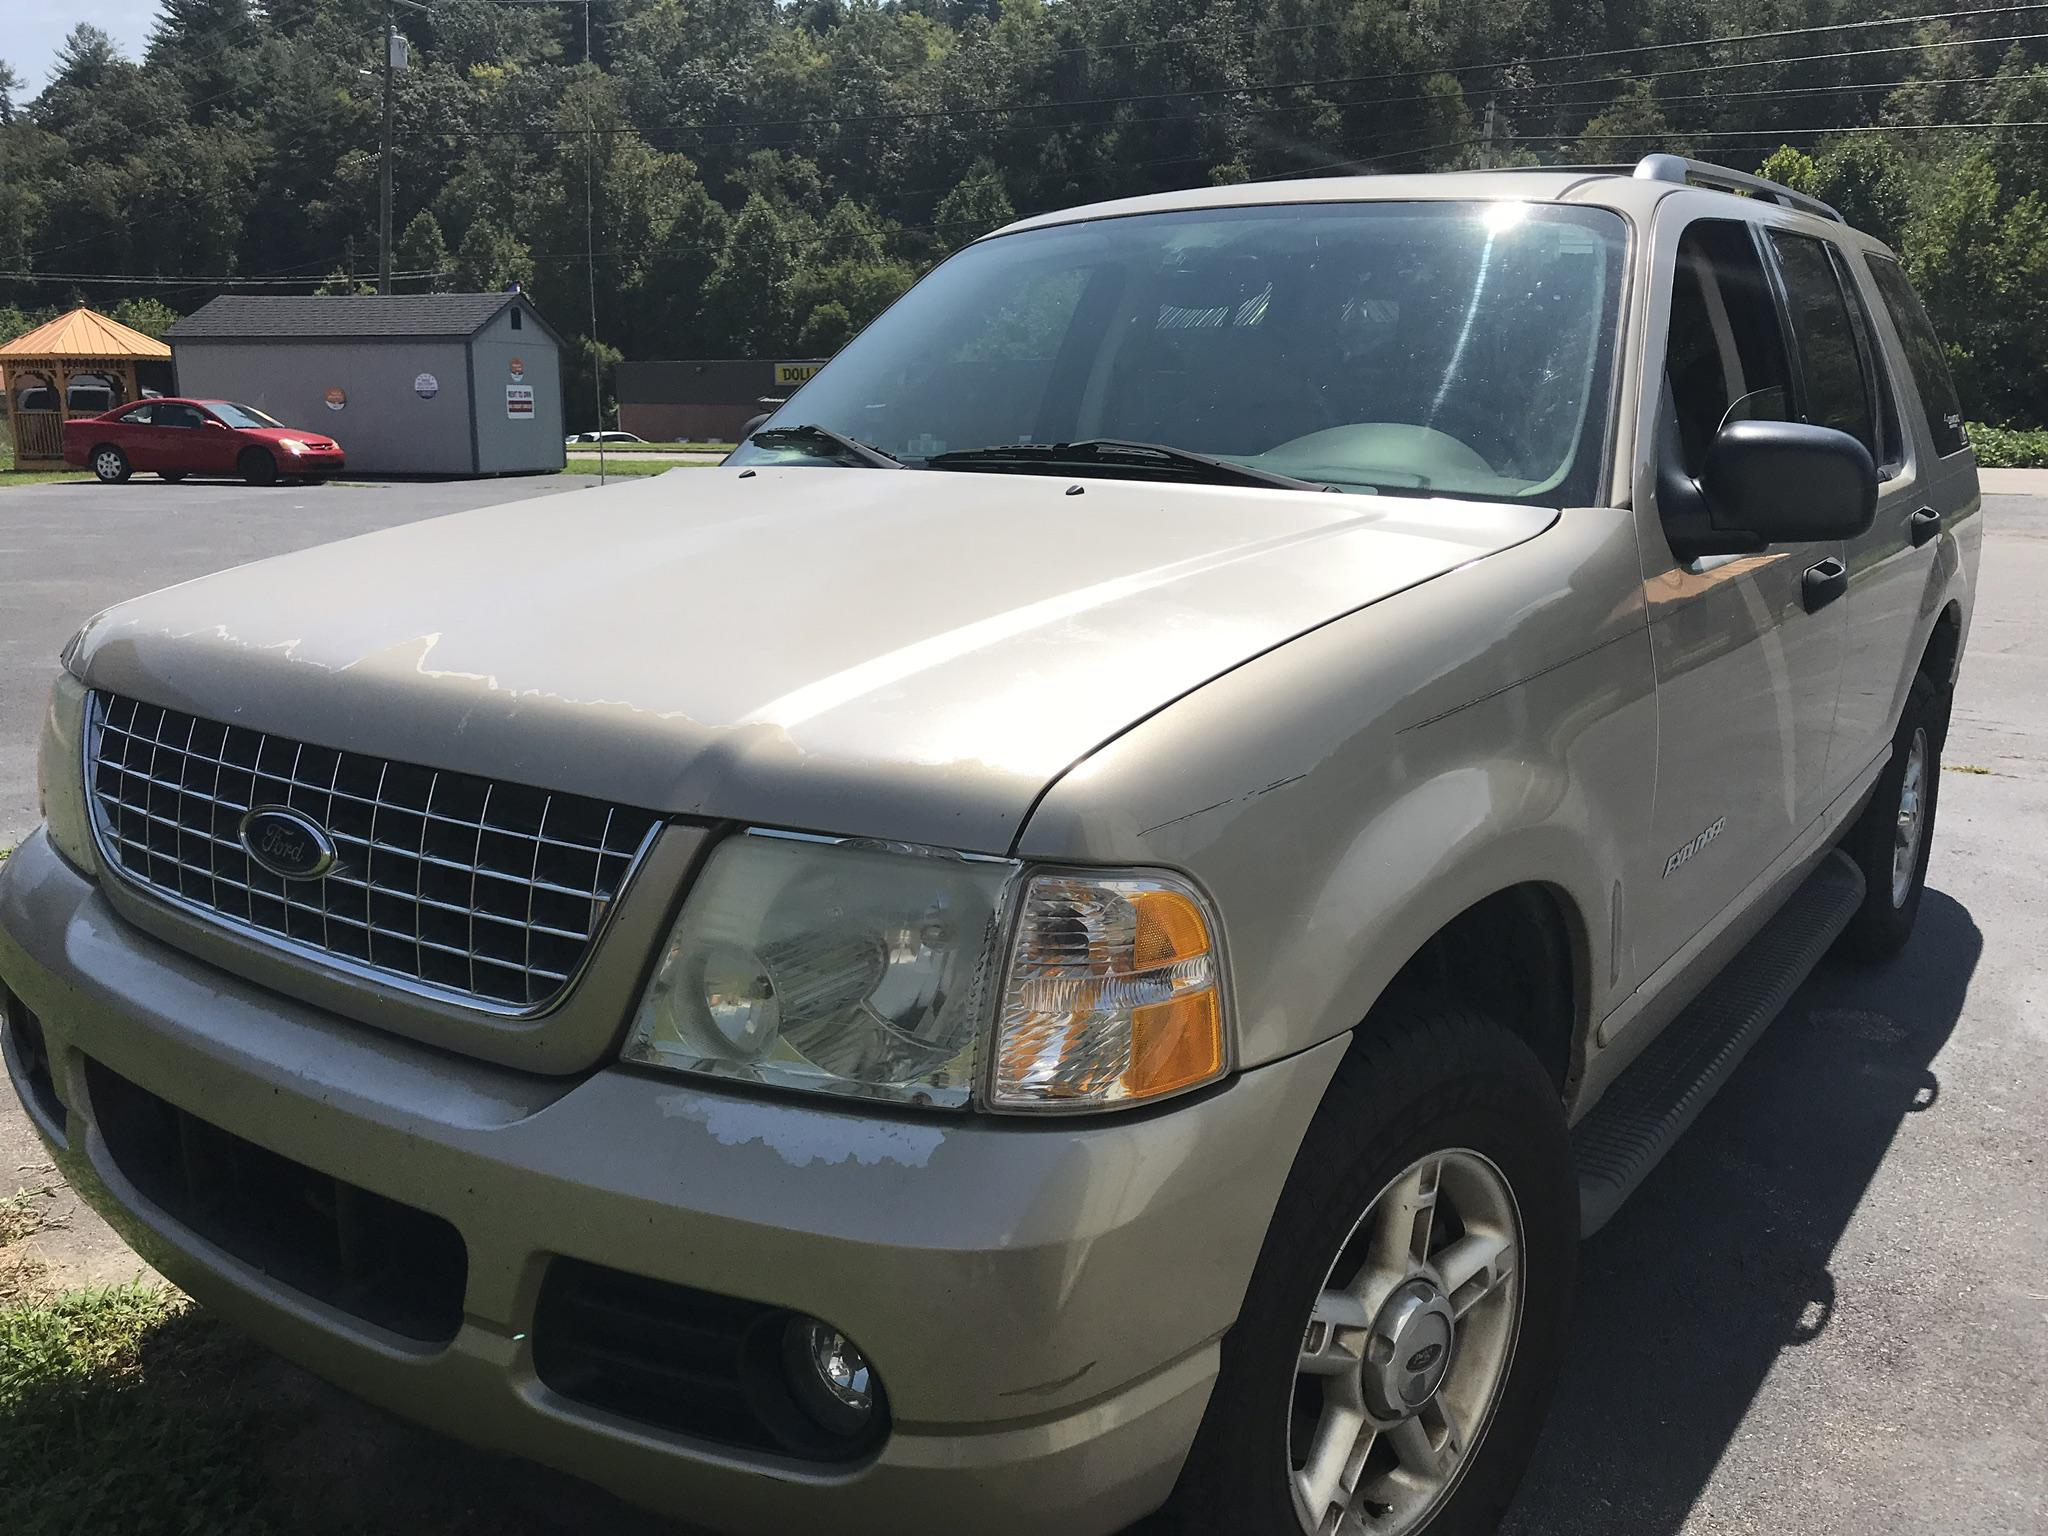 2004 Ford Explorer XLT w/leather